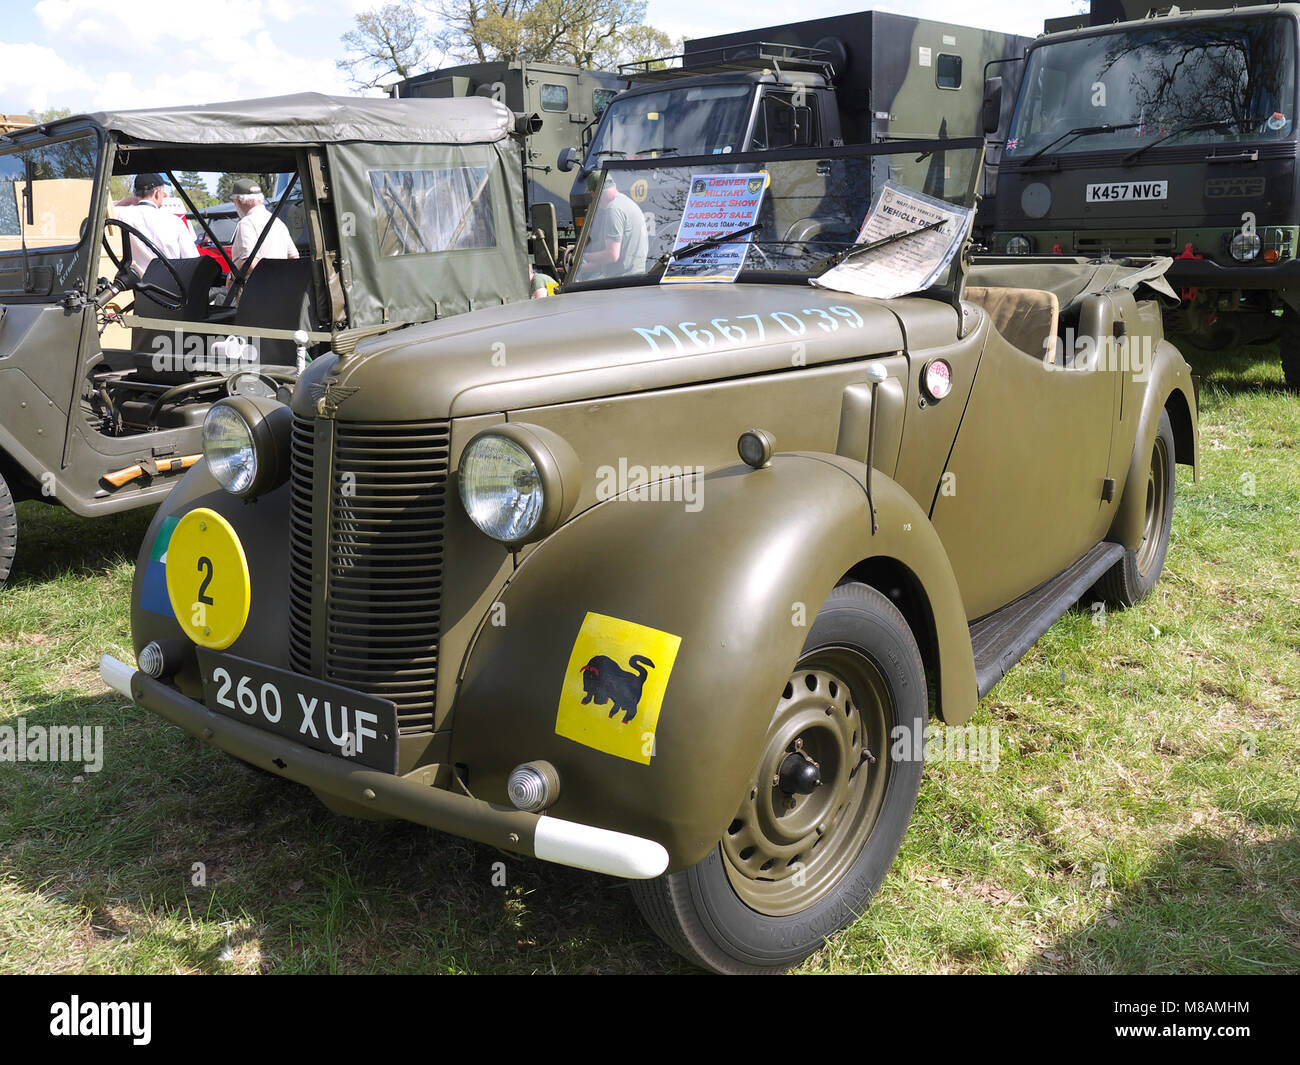 Vintage military staff car, Stradsett rally, Norfolk - Stock Image